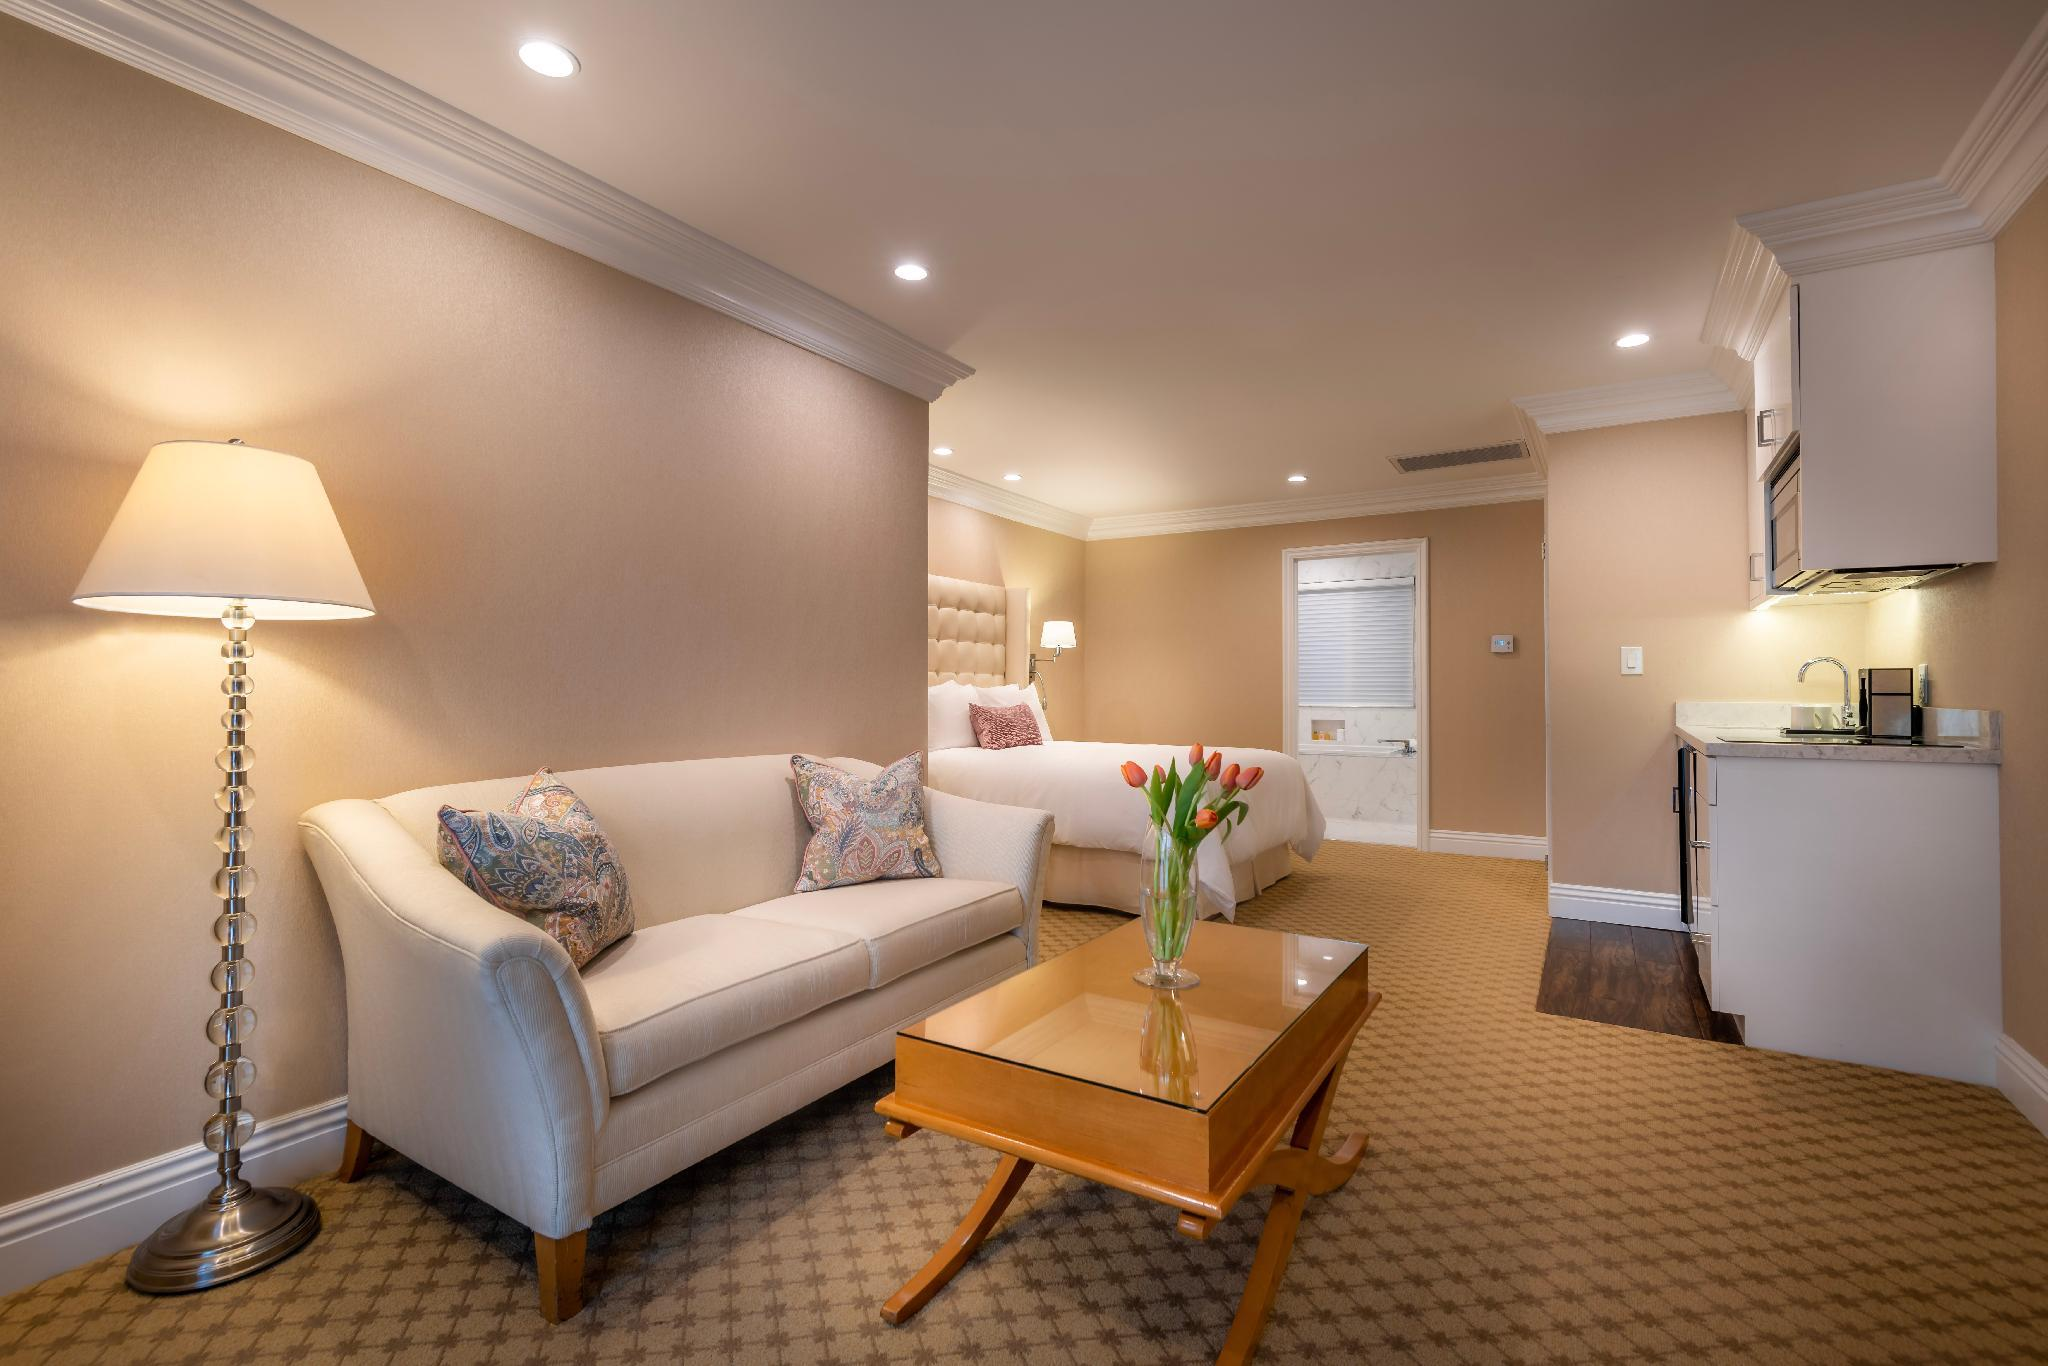 Junior Suite with Queen Bed - Accessible by Stairs Only